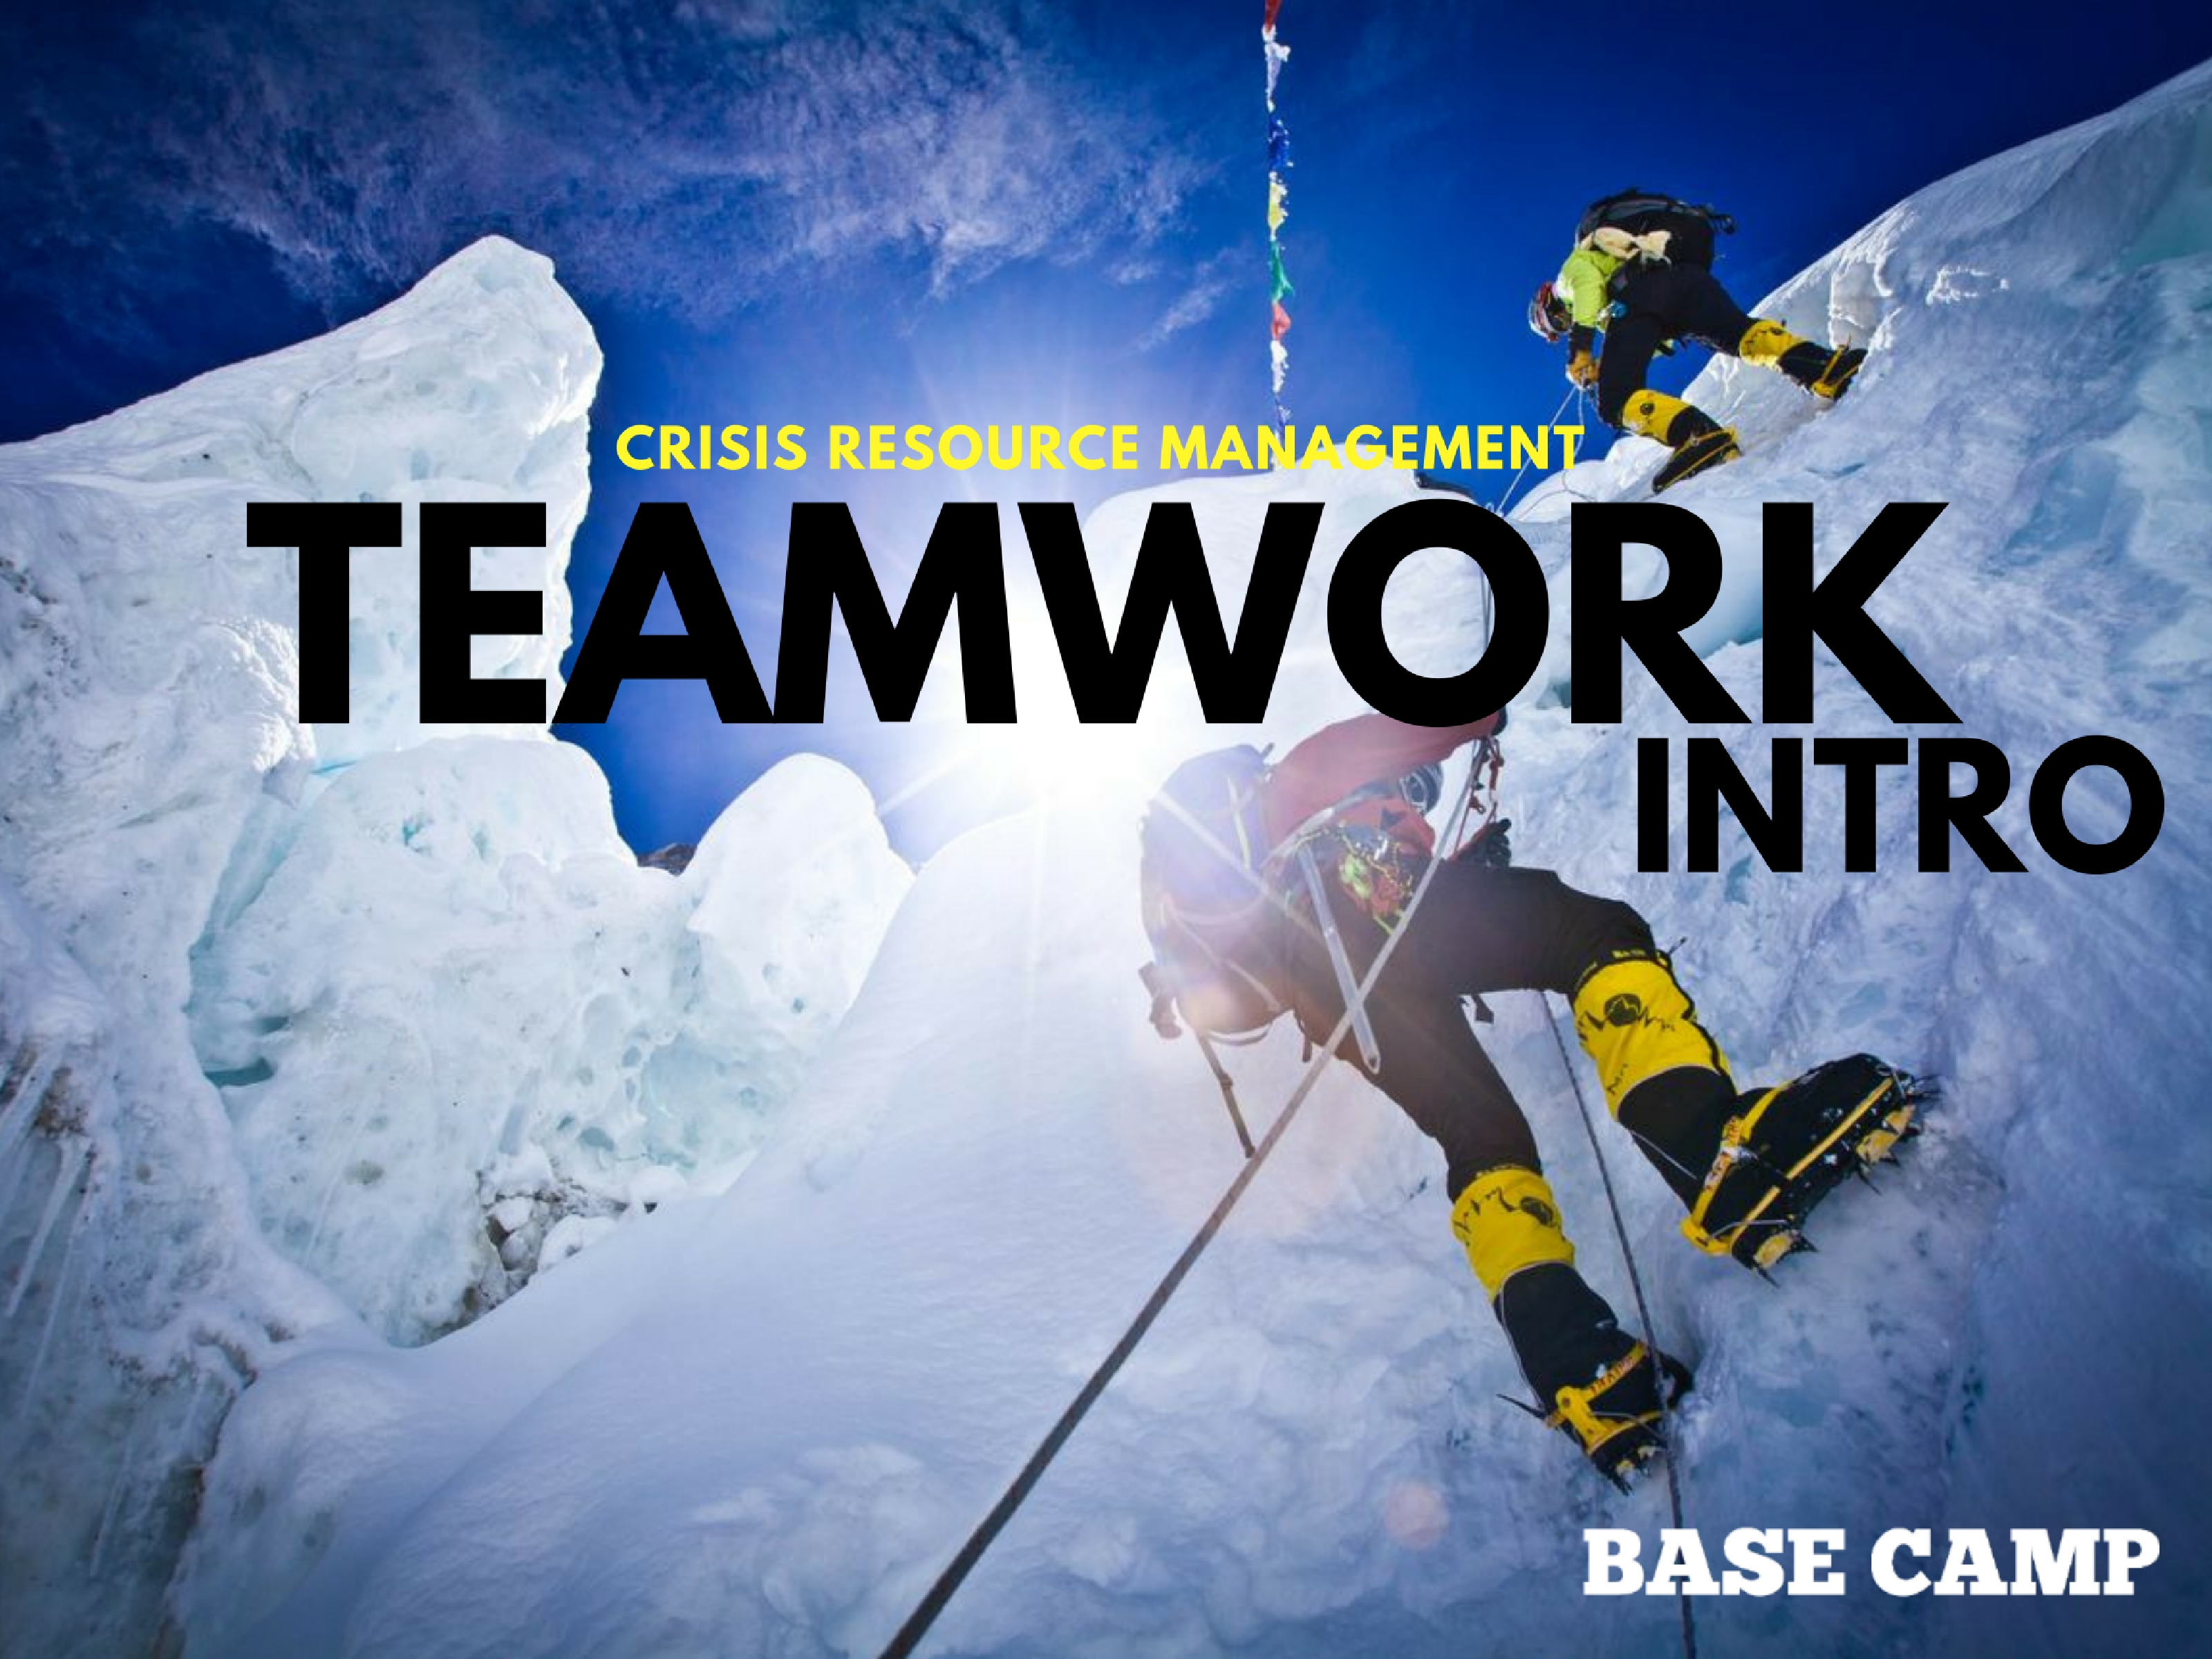 Teamwork & CRM Intro